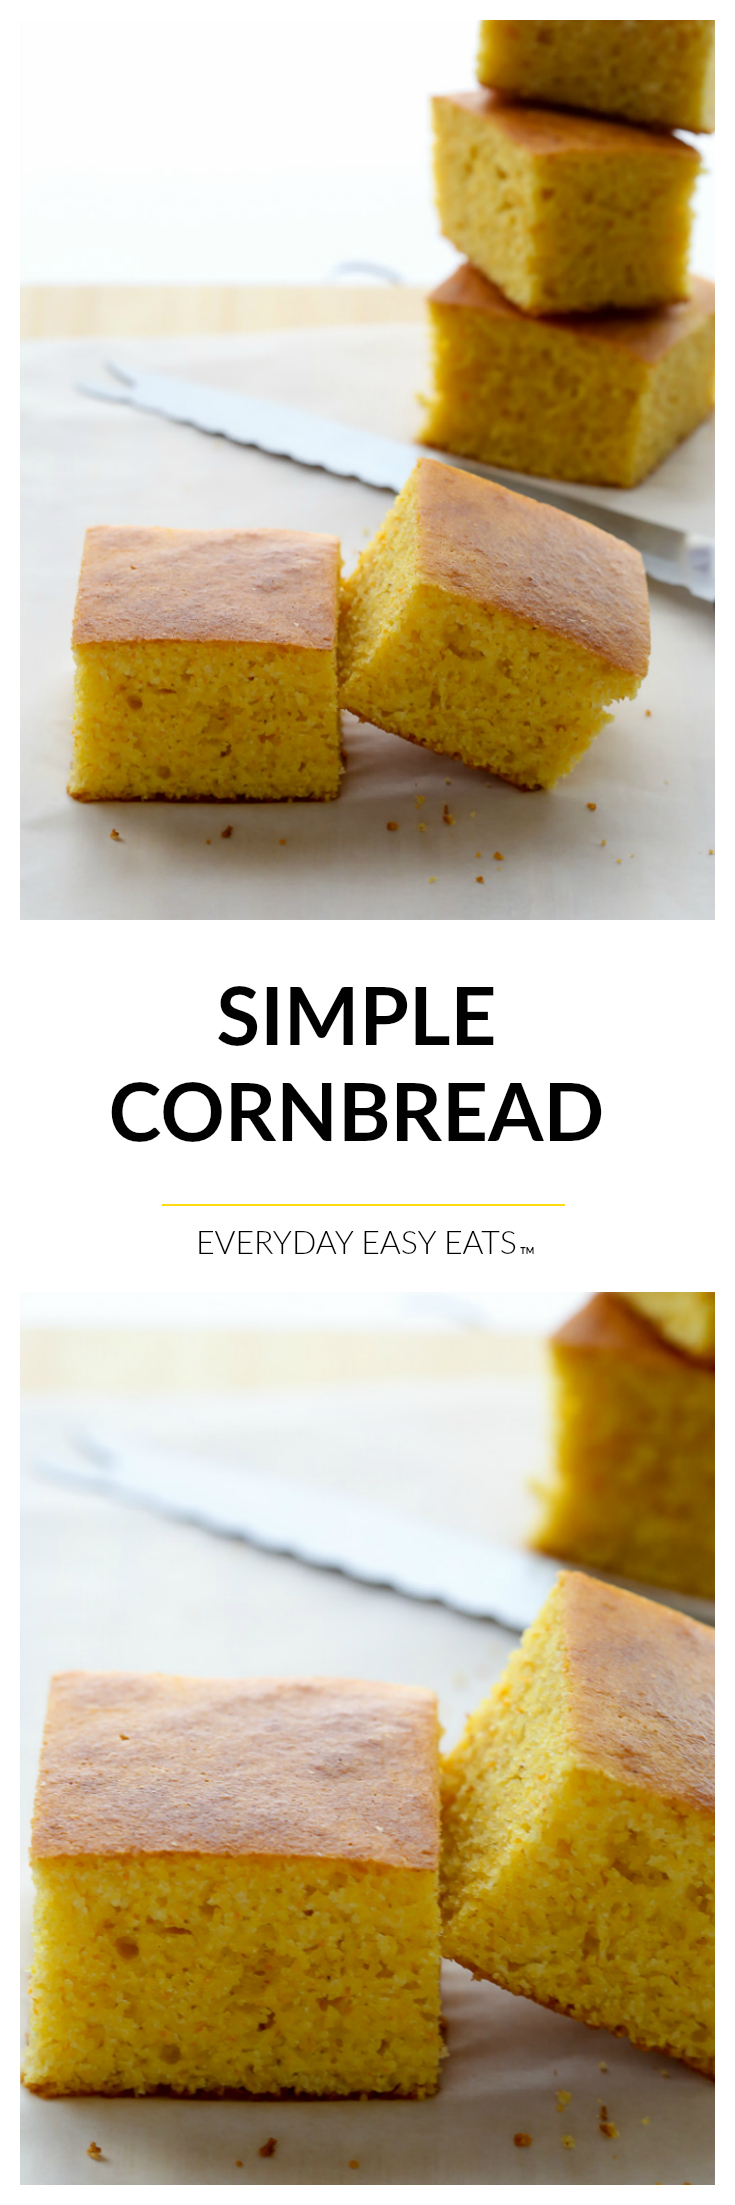 Simple Cornbread - A classic, lightly-sweet cornbread recipe that requires just 9 simple ingredients and 30 minutes to make. | EverydayEasyEats.com